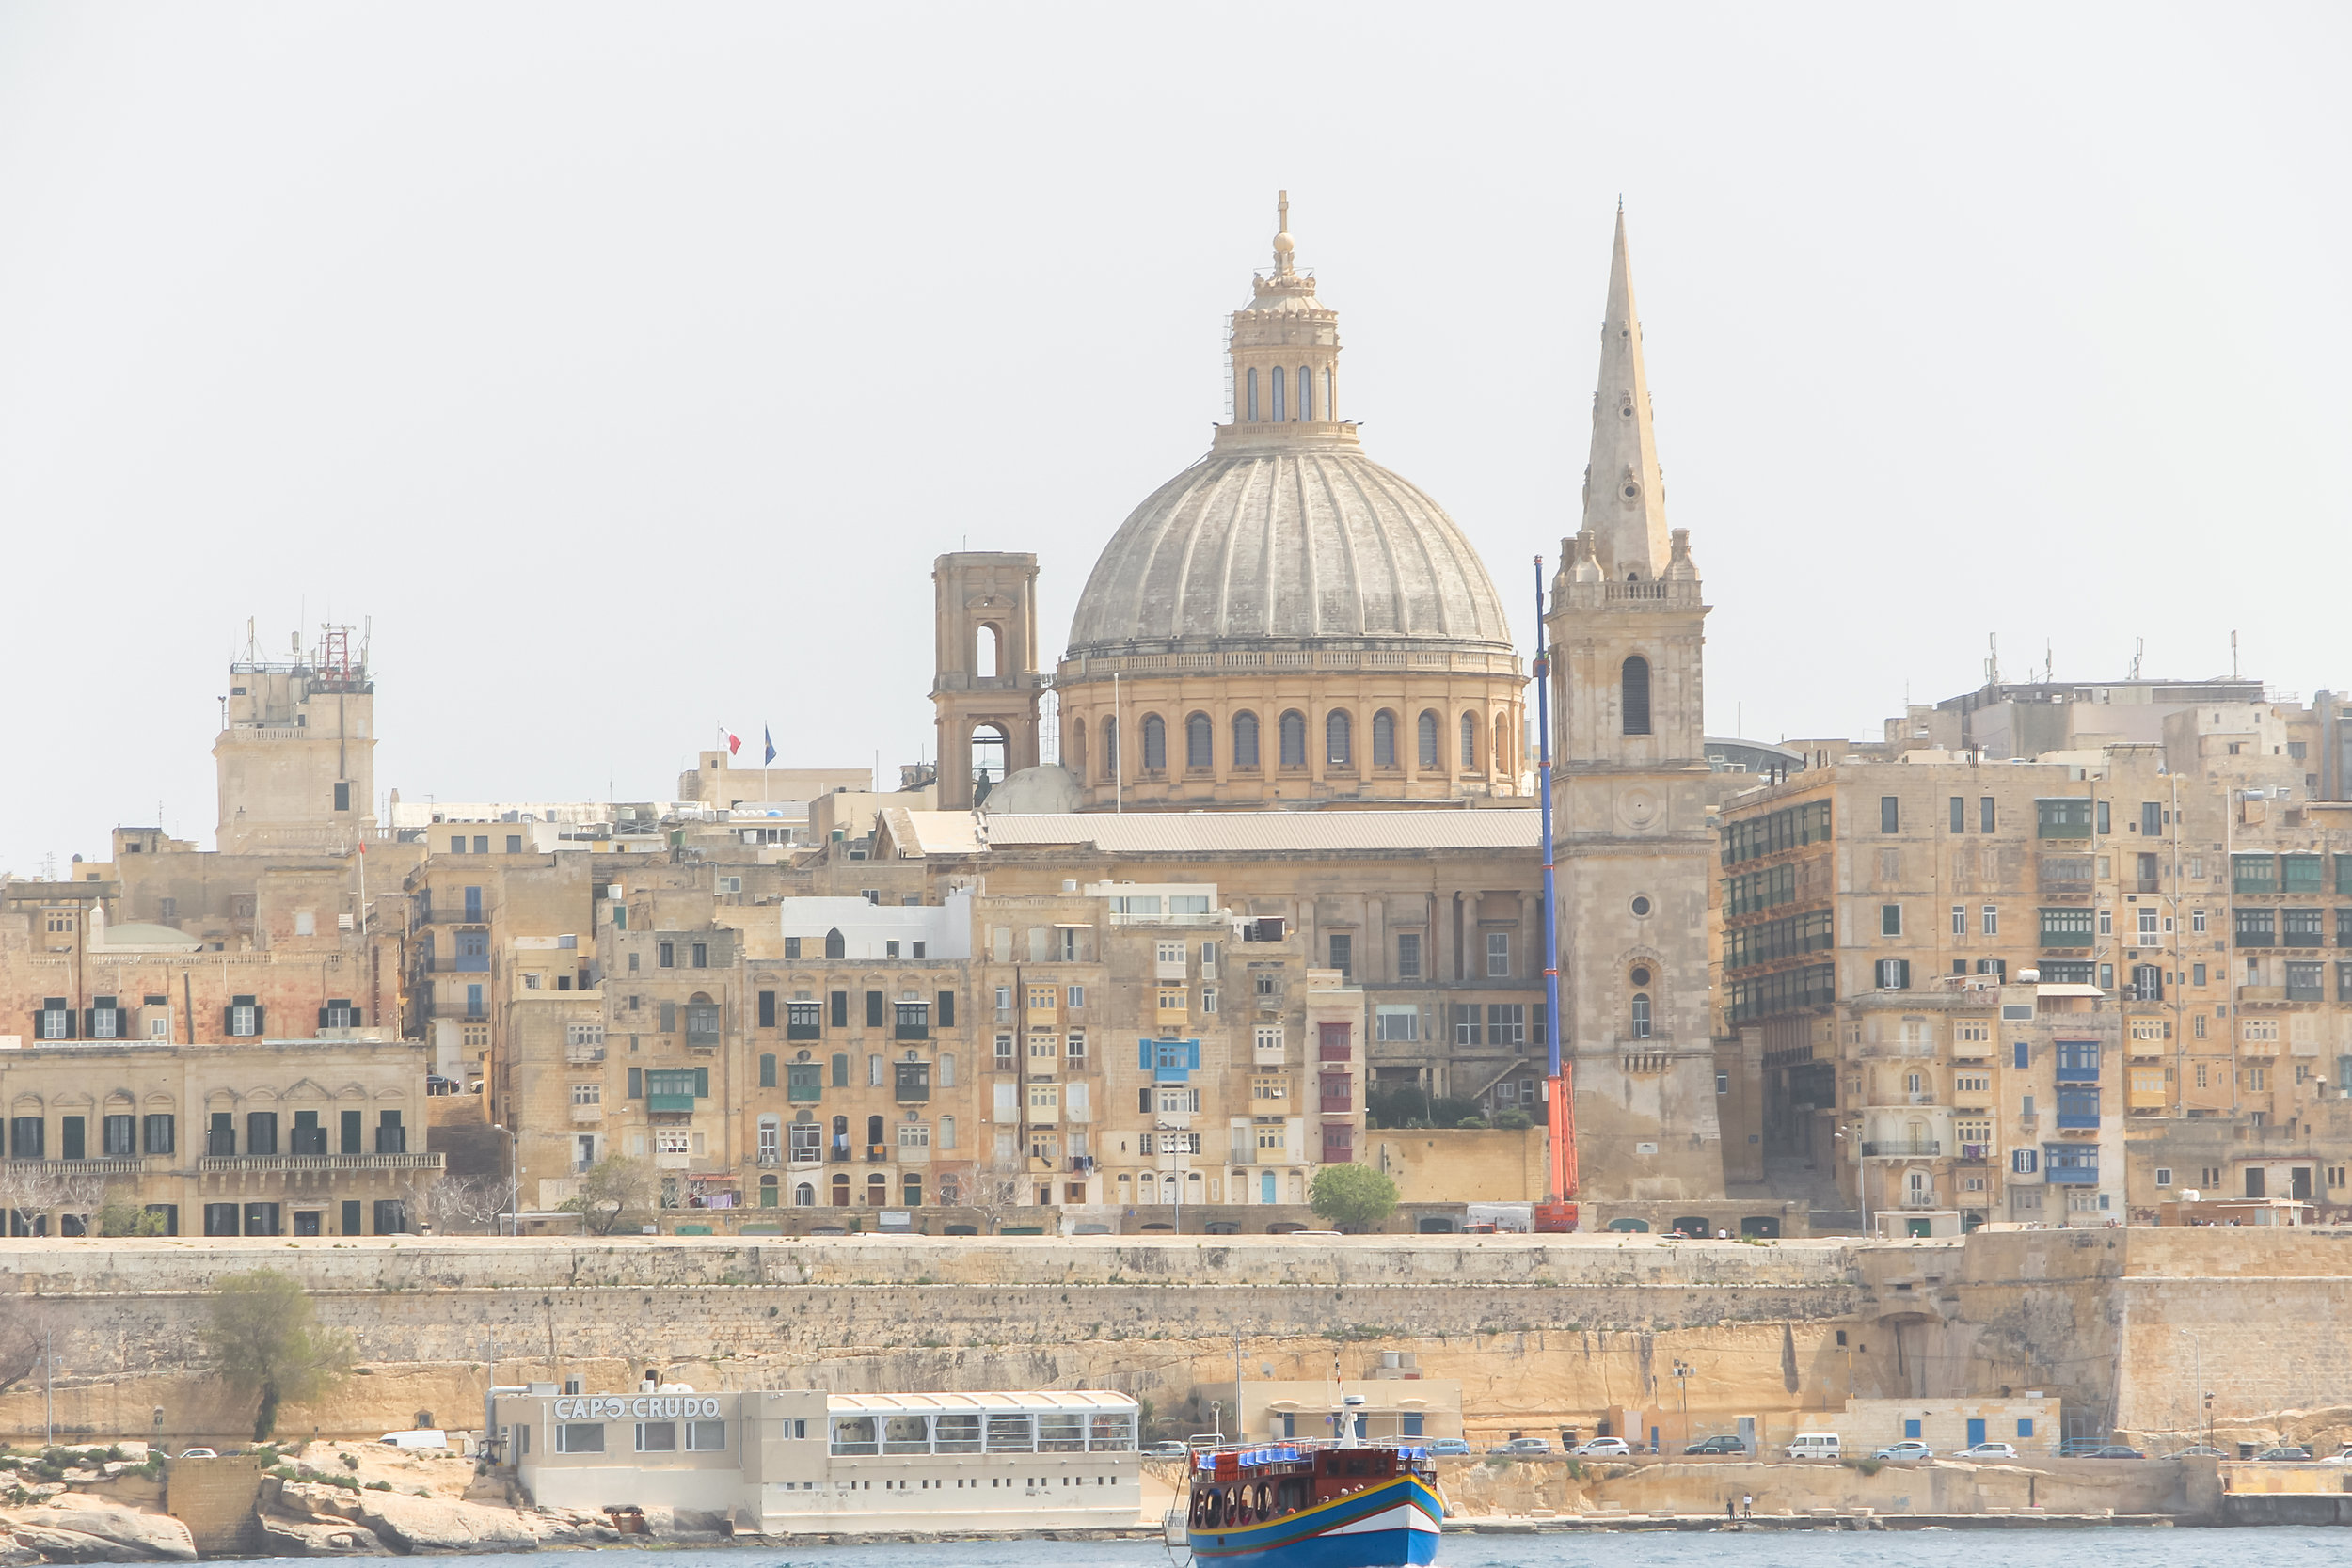 Old Town of Valletta   Carmelite Church, the tower of St Paul's Pro-Cathedral   and the Mediterranean Sea   - Thinking about appreciation for quality in Malta   Malta, Europe   DoLessGetMoreDone.com   - Canon Minimal Travel Documentary Photography - search for liveability   Sustainability